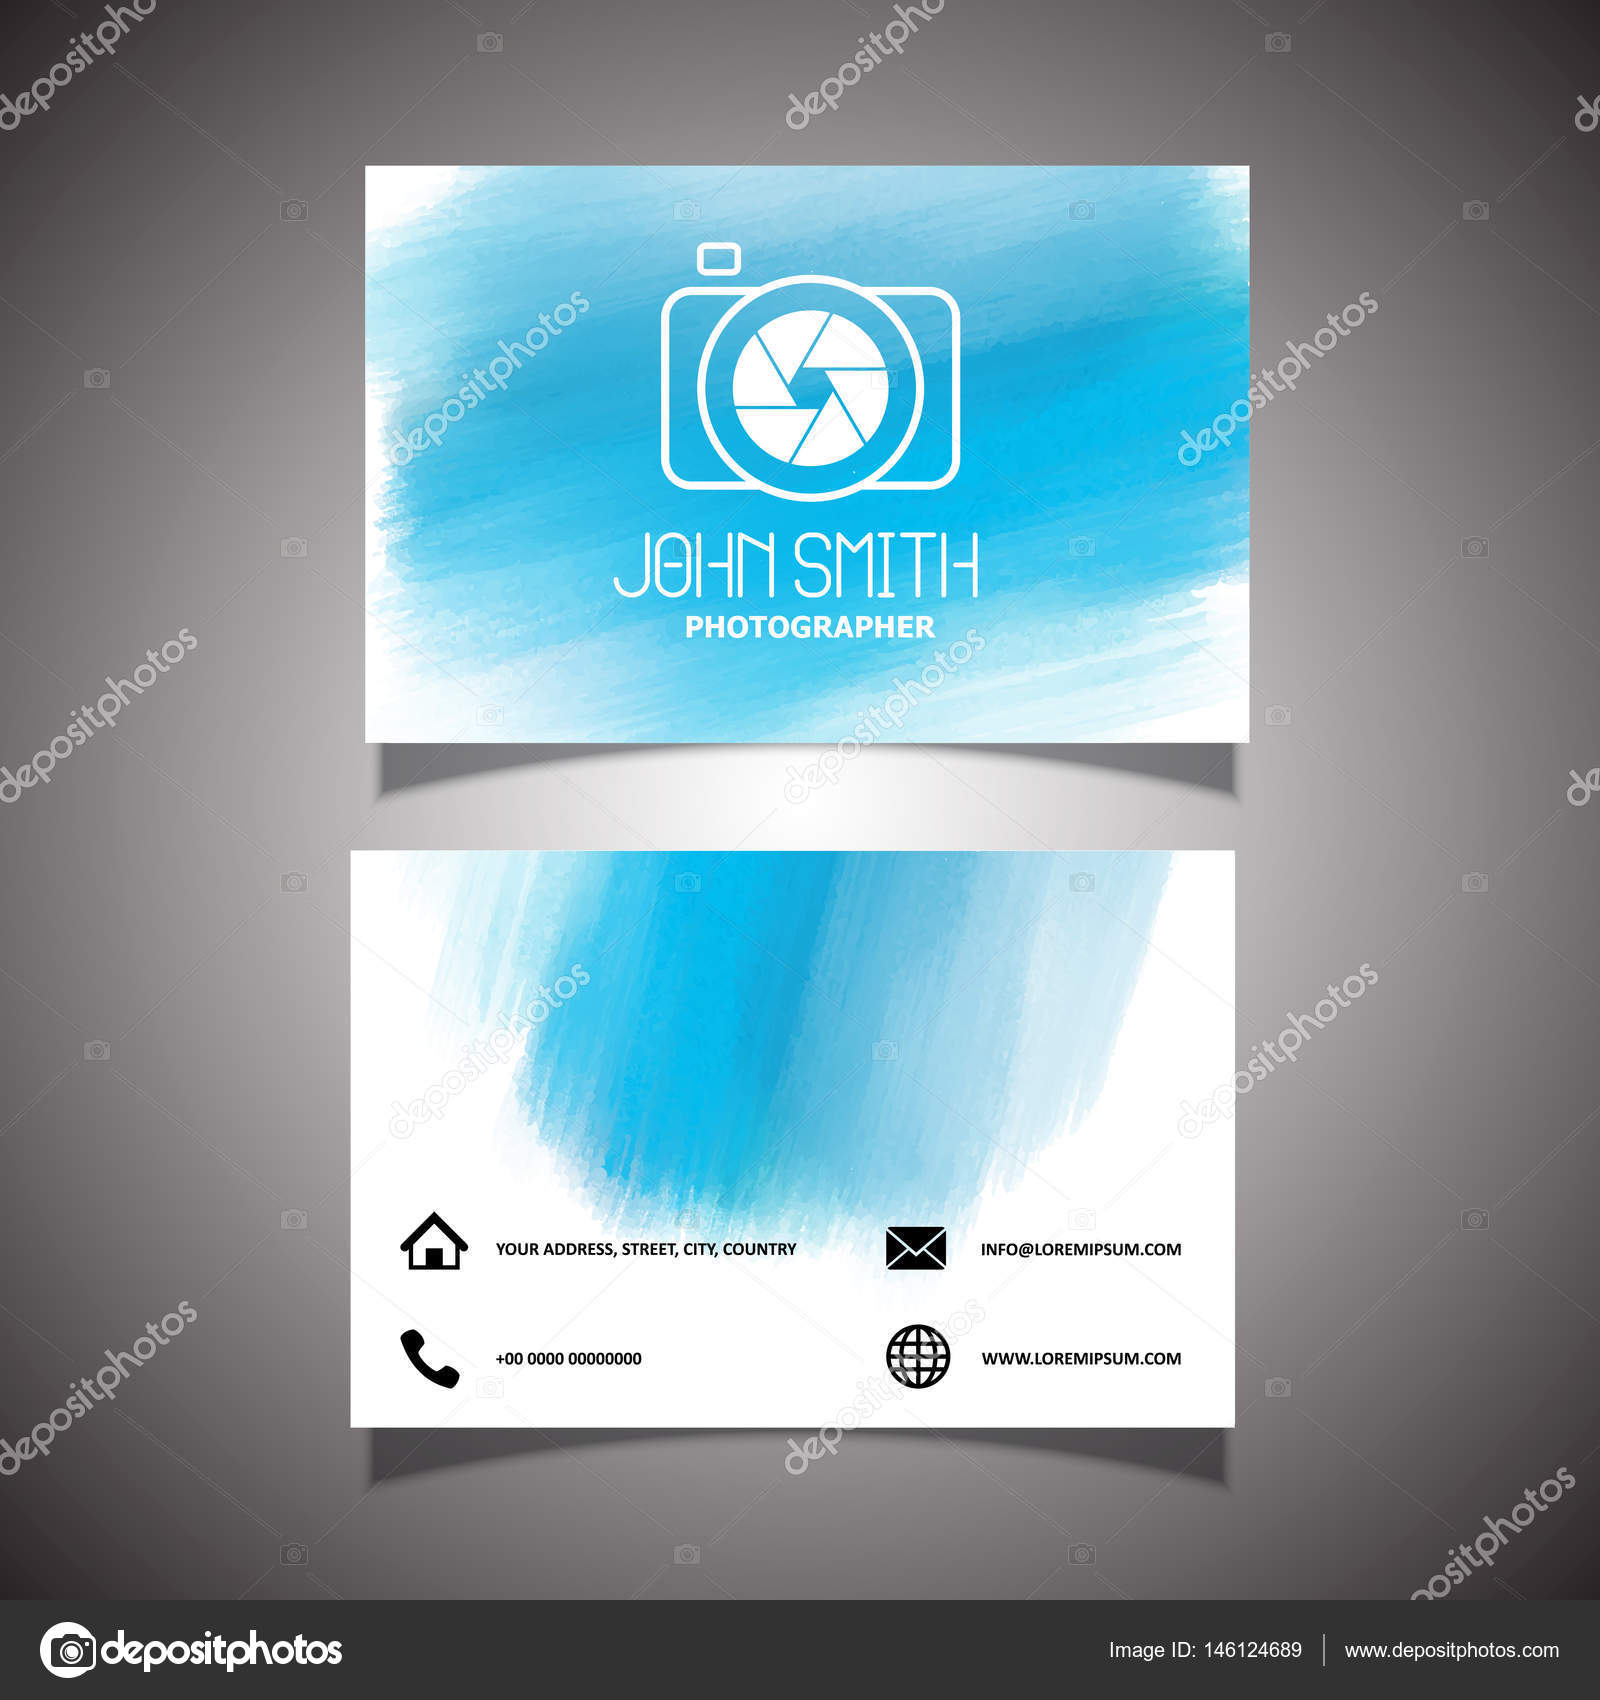 Photographers business card design — Stock Vector © kjpargeter ...